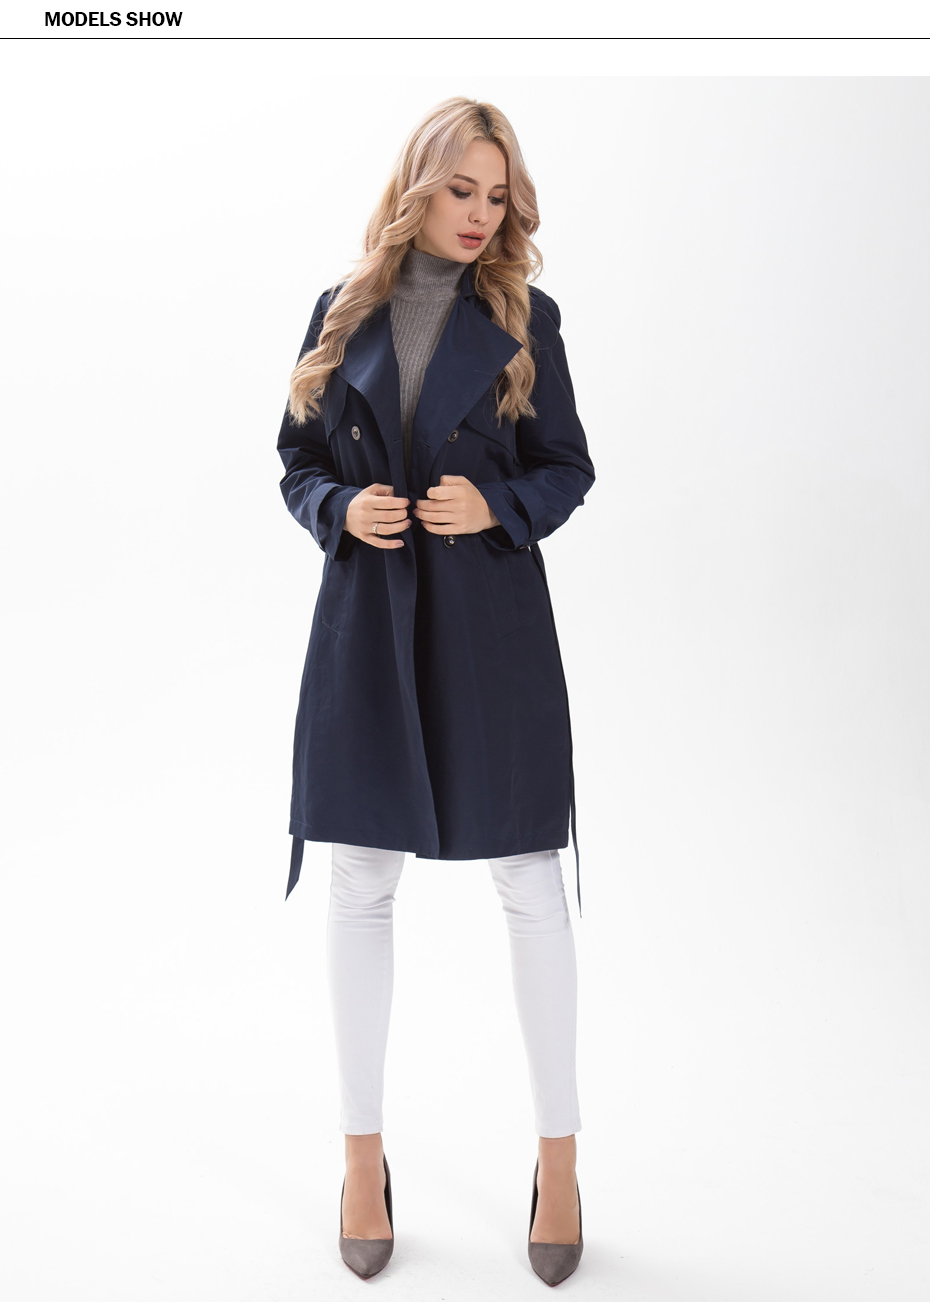 Фото MS VASSA Women  Spring coats size 4XL 6XL Женский плащ.